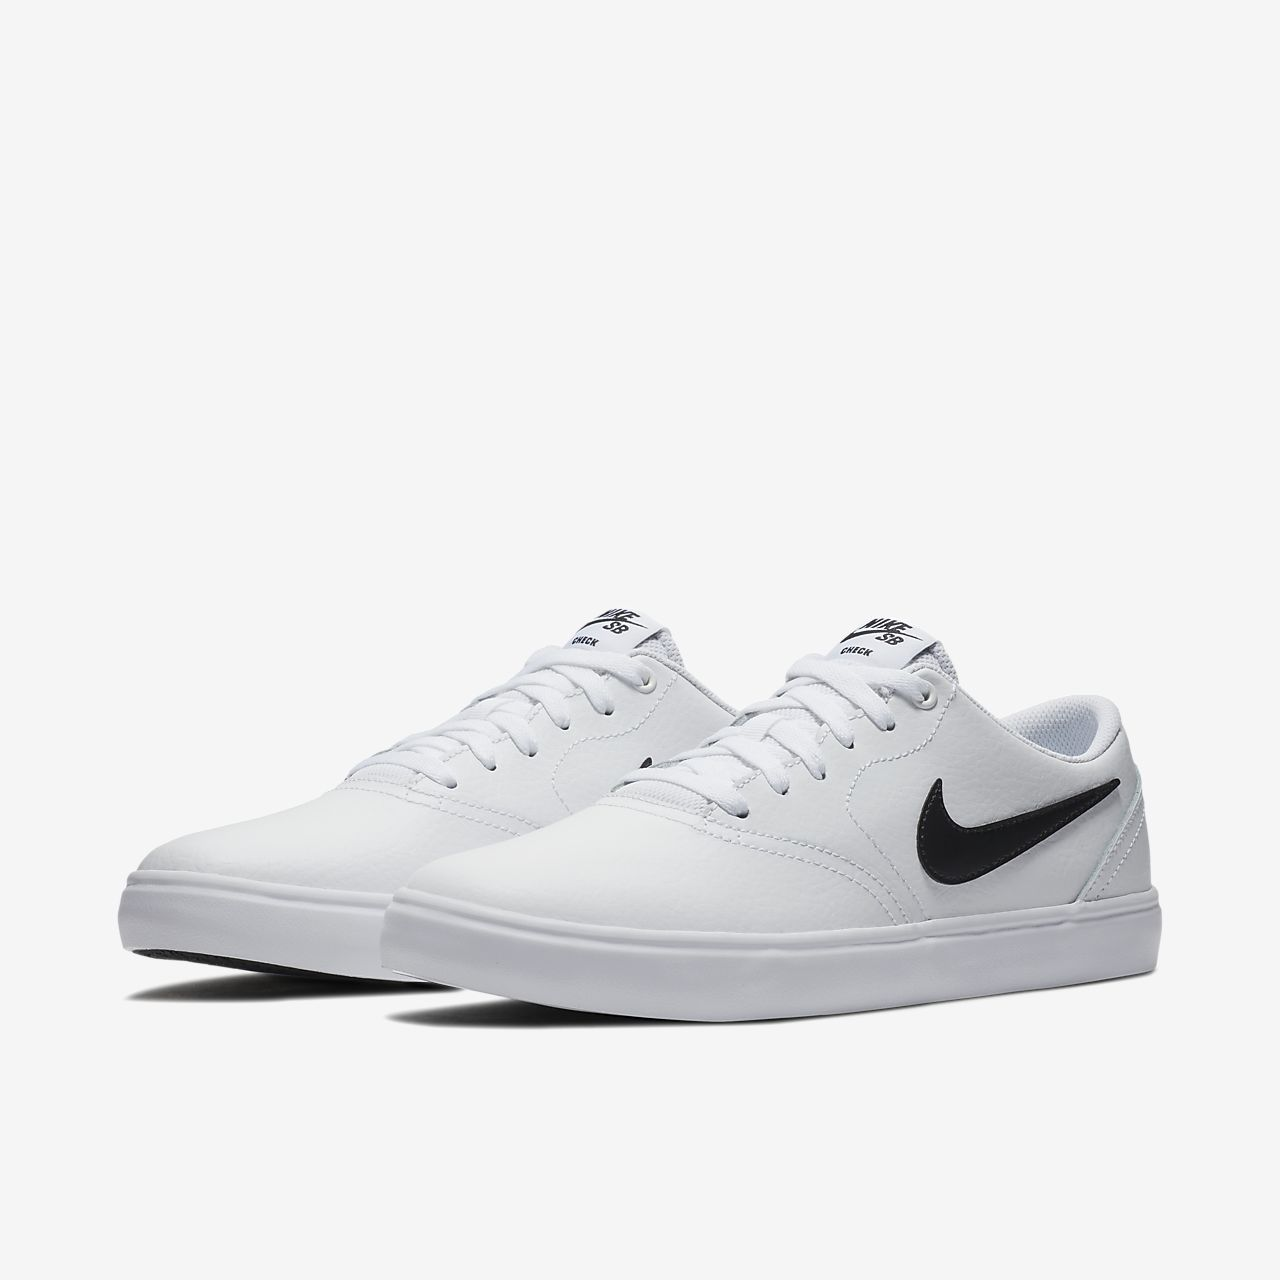 f8a71657 Nike SB Check Solarsoft Men's Skateboarding Shoe | Kicks | Sneakers ...